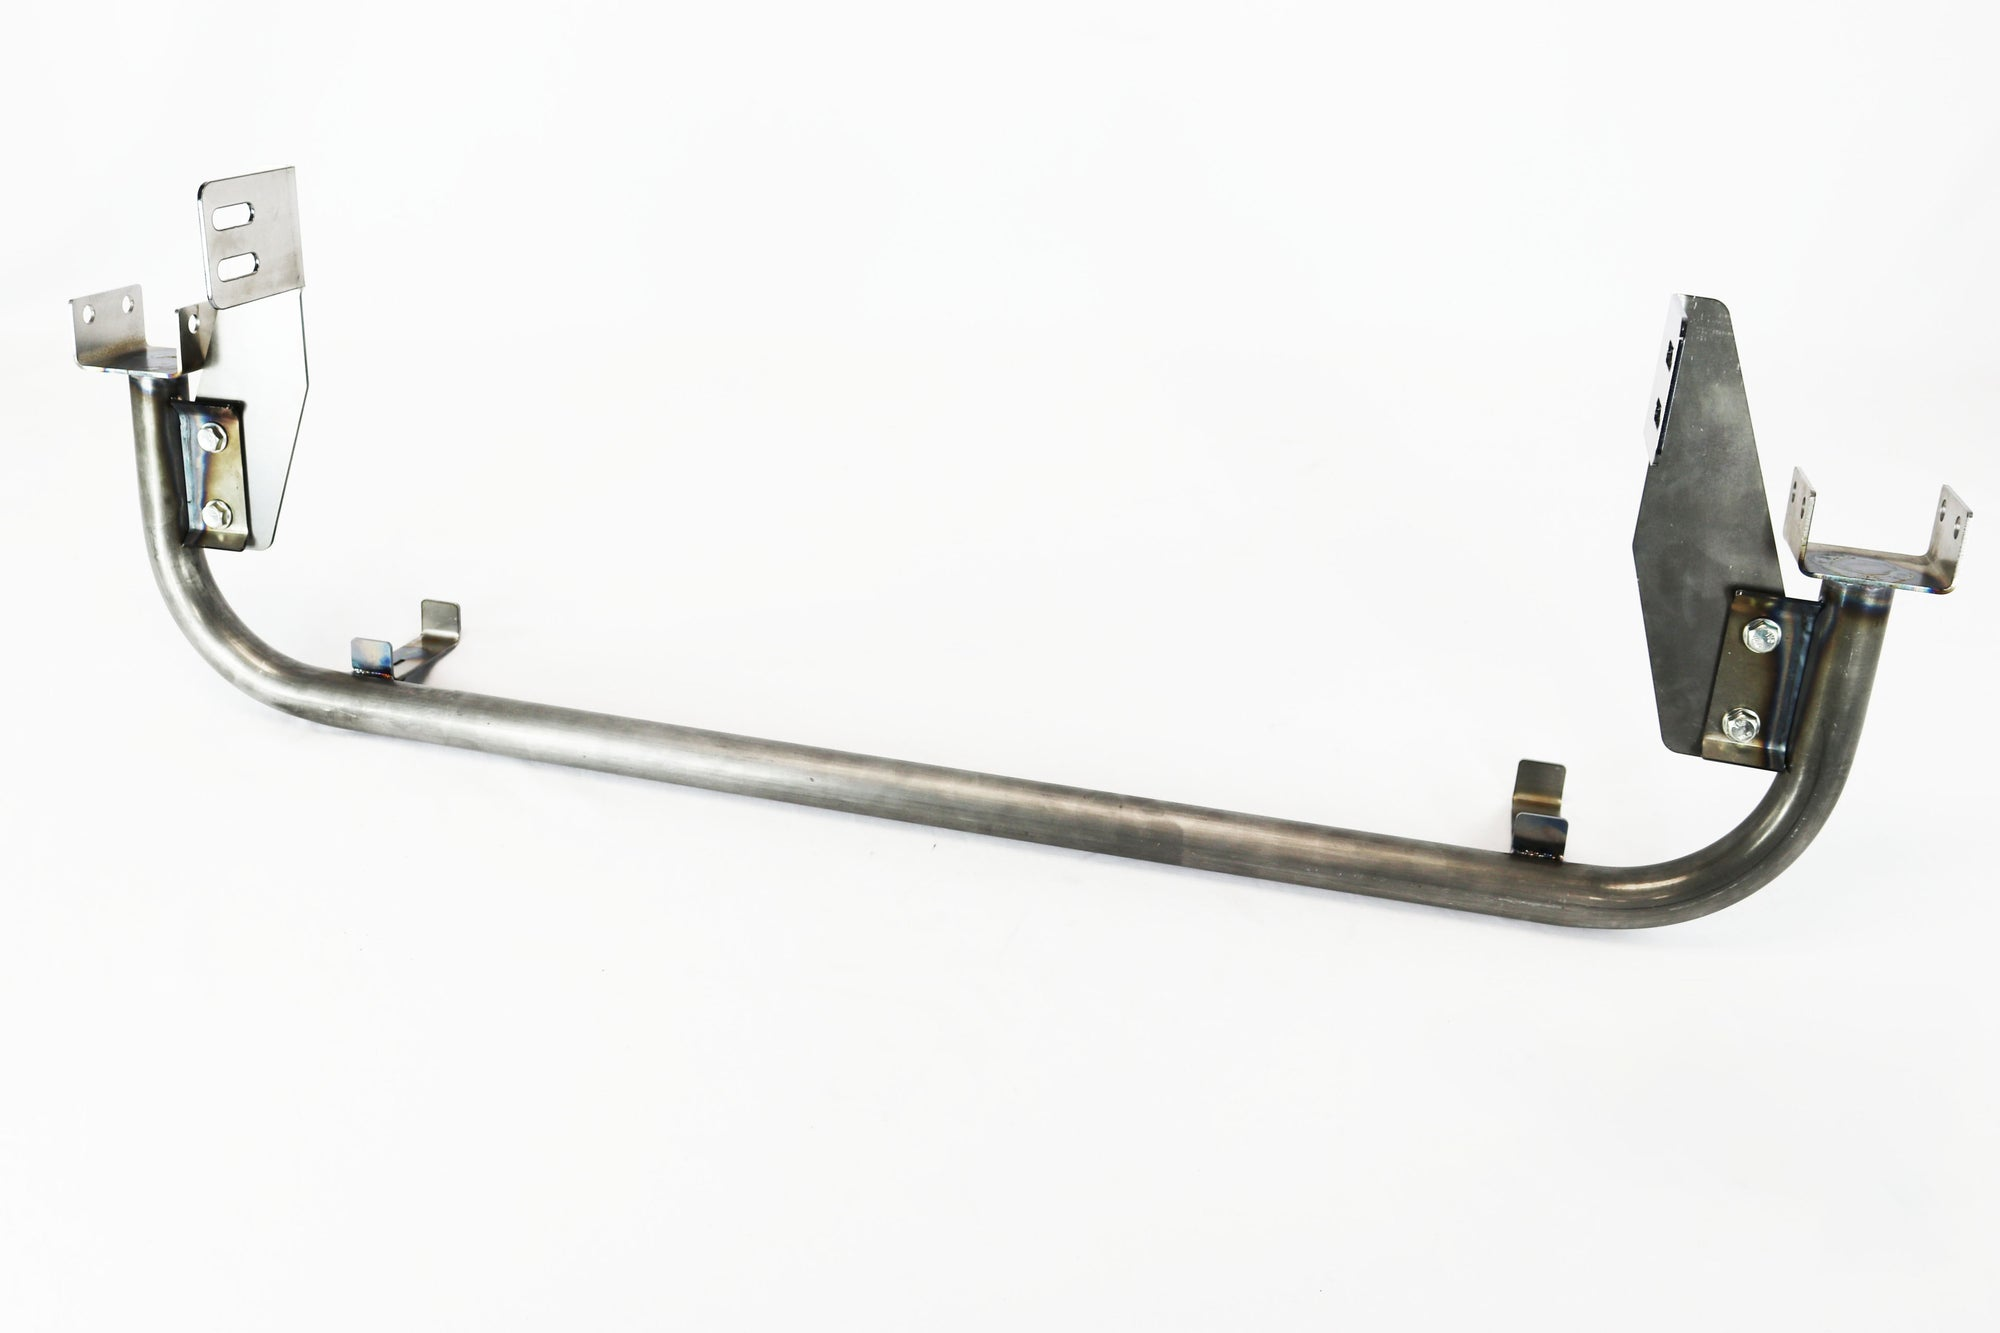 1994-04 Mustang SN95 Edge Lower Radiator Support and Intercooler Mounting System (Bolt In/Weld In) - Motion Raceworks